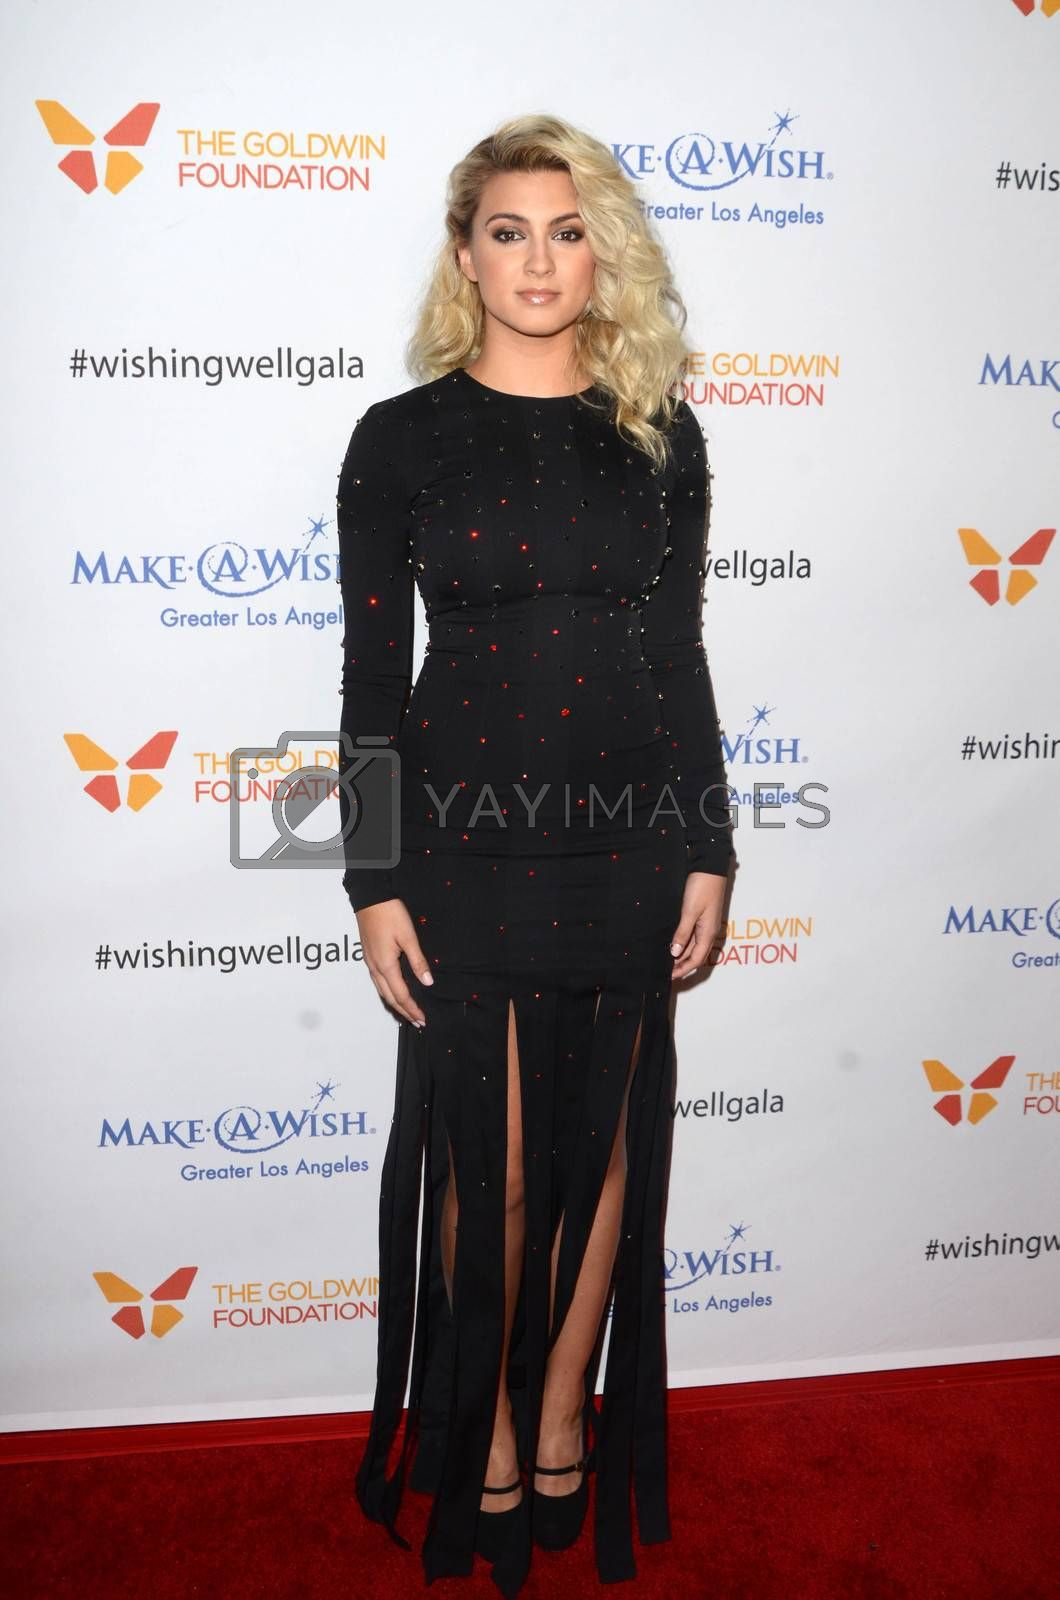 Royalty free image of Tori Kelly at the 4th Annual Wishing Well Winter Gala presented by Make-A-Wish Greater Los Angeles, Hollywood Palladium, Hollywood, CA 12-07-16/ImageCollect by ImageCollect